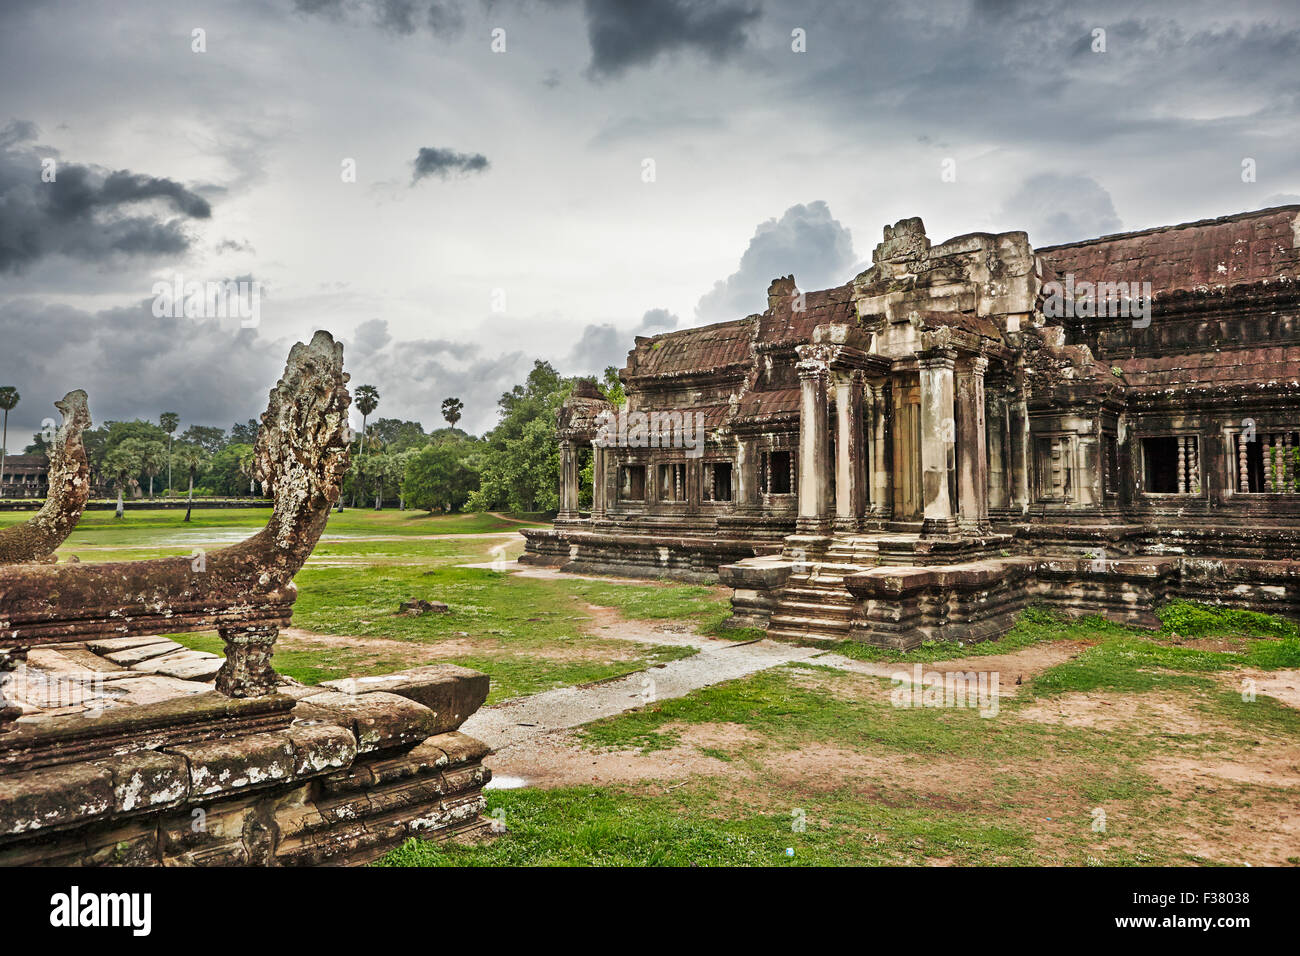 Library building at Angkor Wat temple complex. Angkor Archaeological Park, Siem Reap Province, Cambodia. - Stock Image